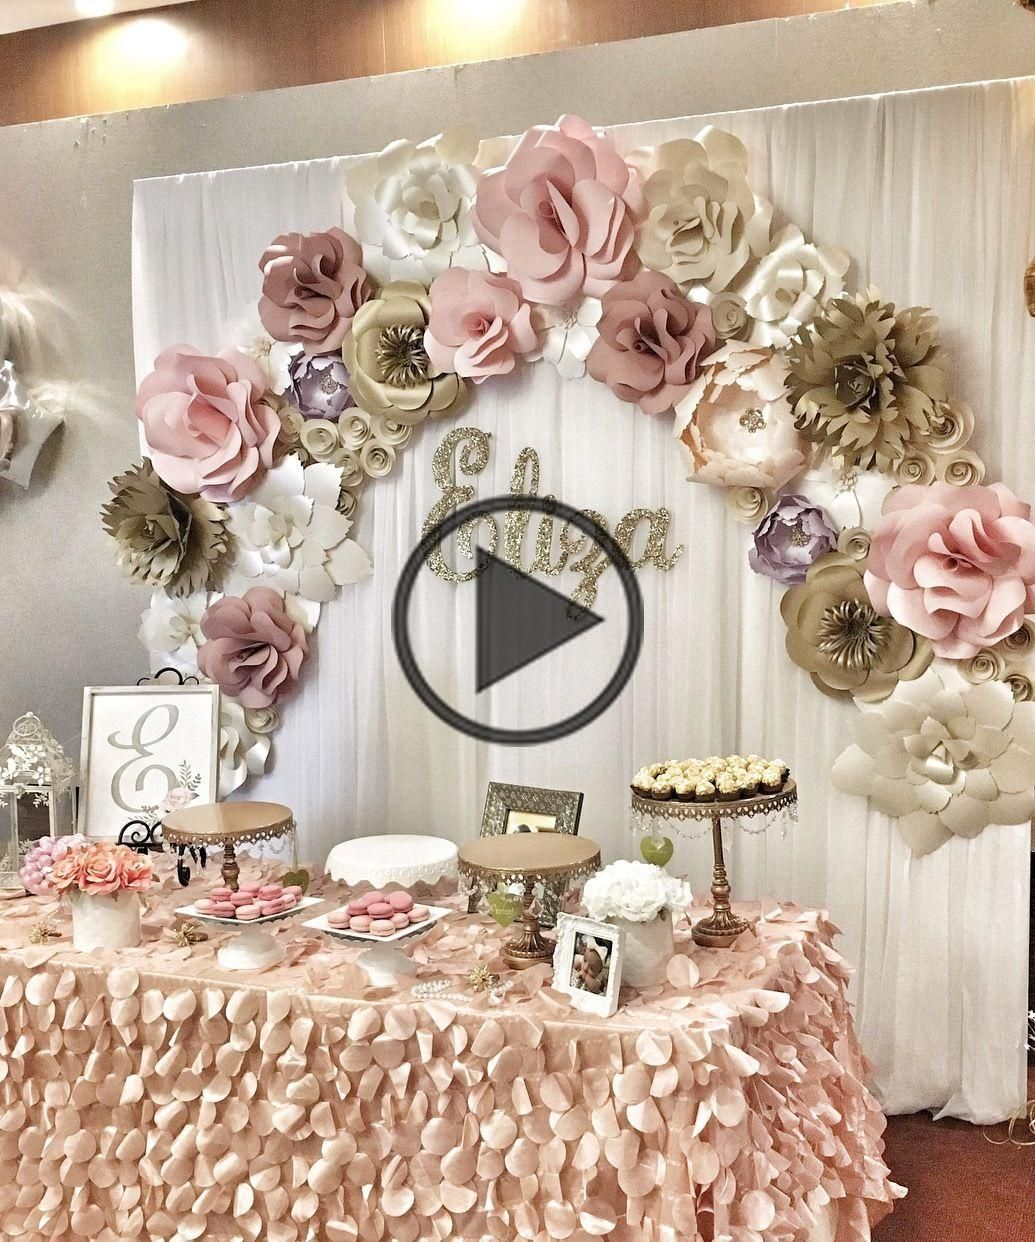 Paper Flower Wall Rental Pictures Paper Flower Wall Rentals And Paper Flower Arch Rental For In 2020 Girly Decor Flower Wall Rental Birthday Decorations